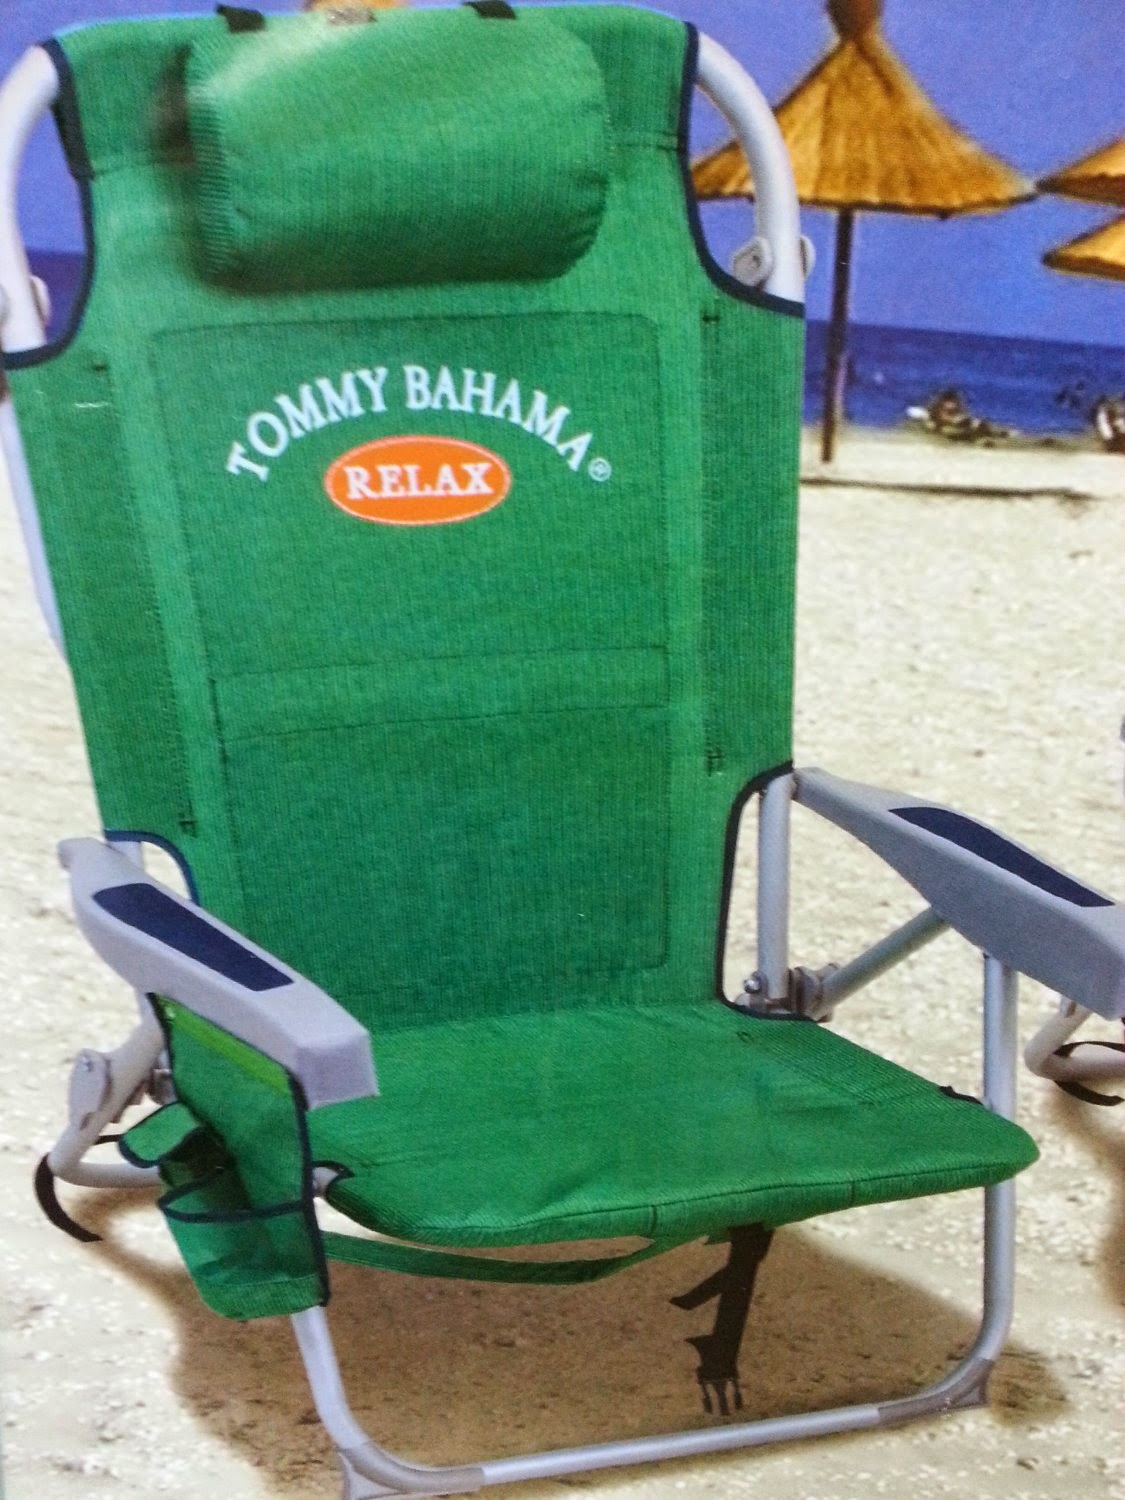 Tommy Bahama Cooler Chair Folding At Costco Cheap Beach Chairs 2014 Umbrella Green